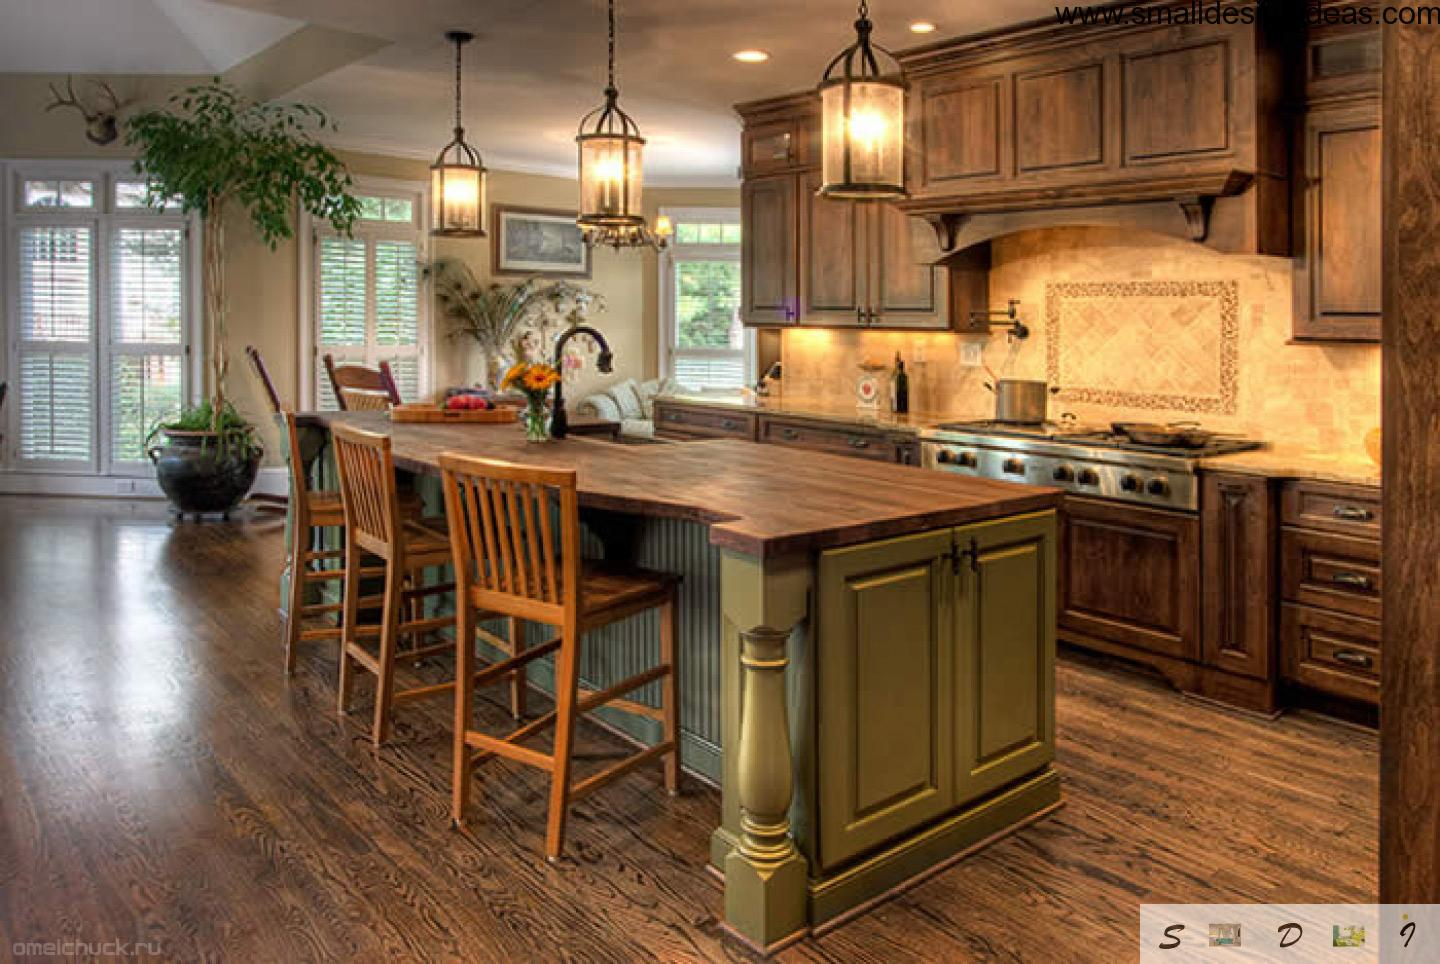 Country kitchen design - Country style kitchen cabinets ...